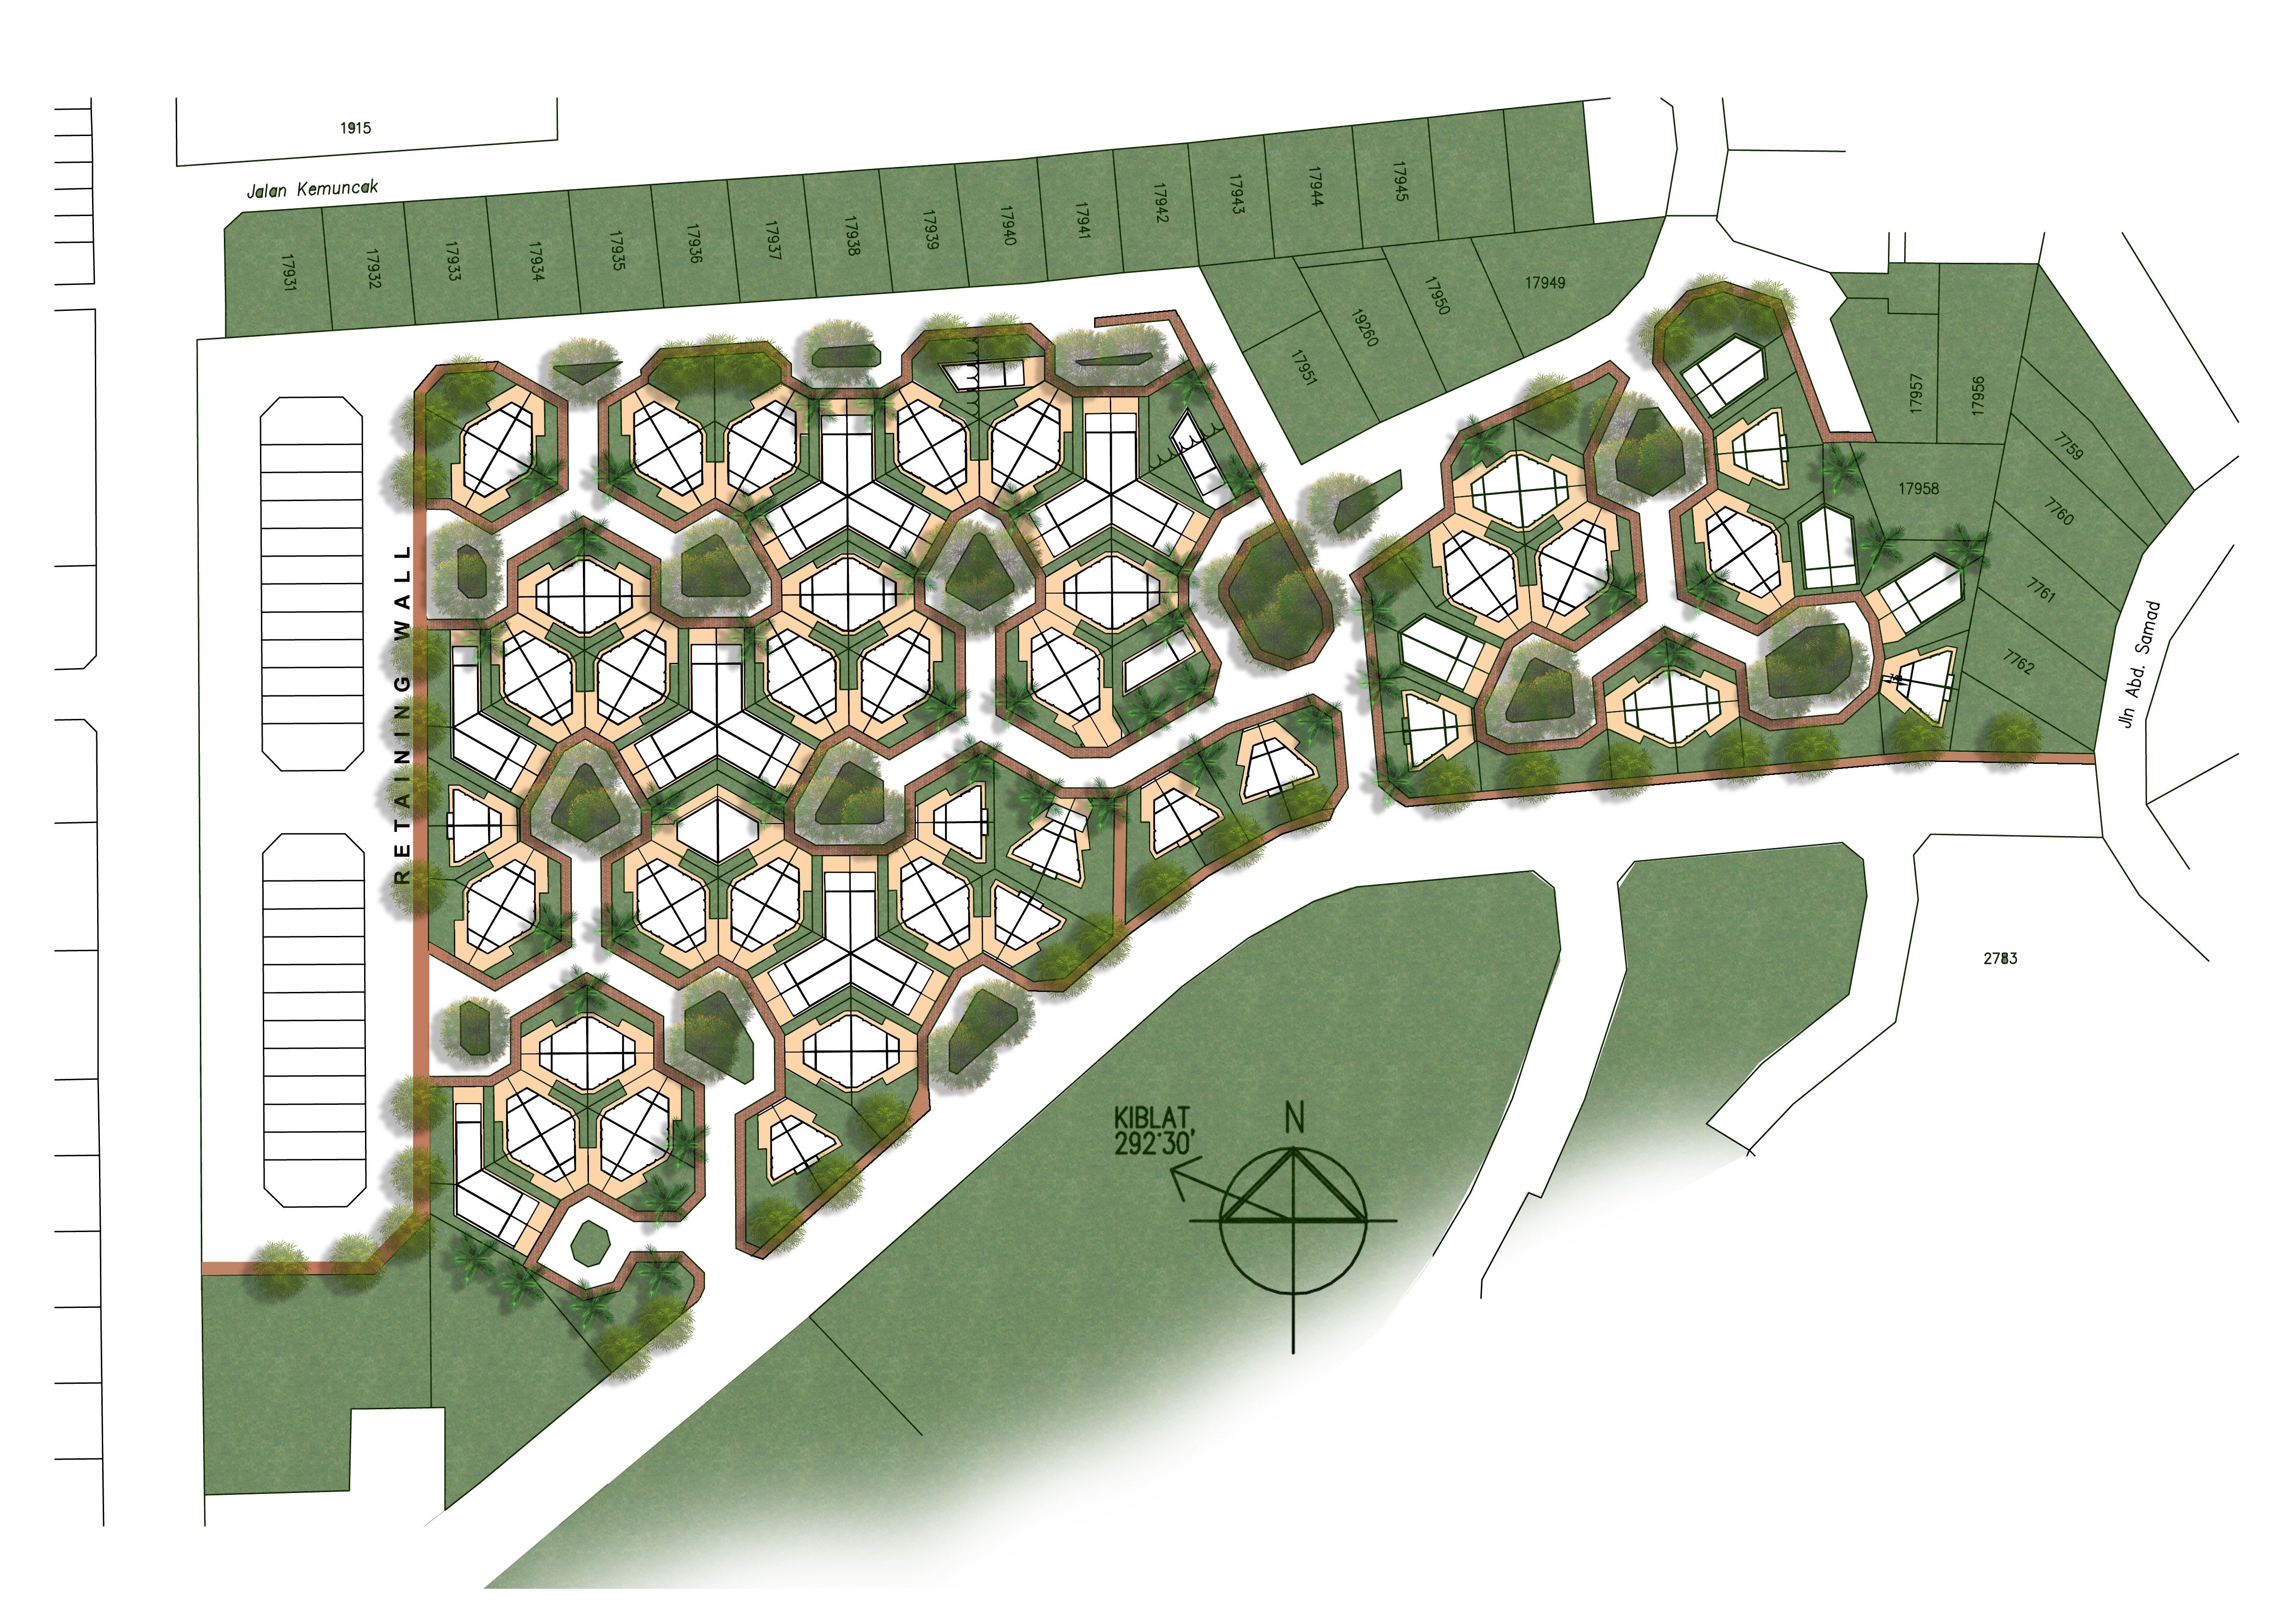 Government Releases Land For Thousands Of New Homes Show House Urban Design Plan Urban Design Architecture Landscape Design Plans